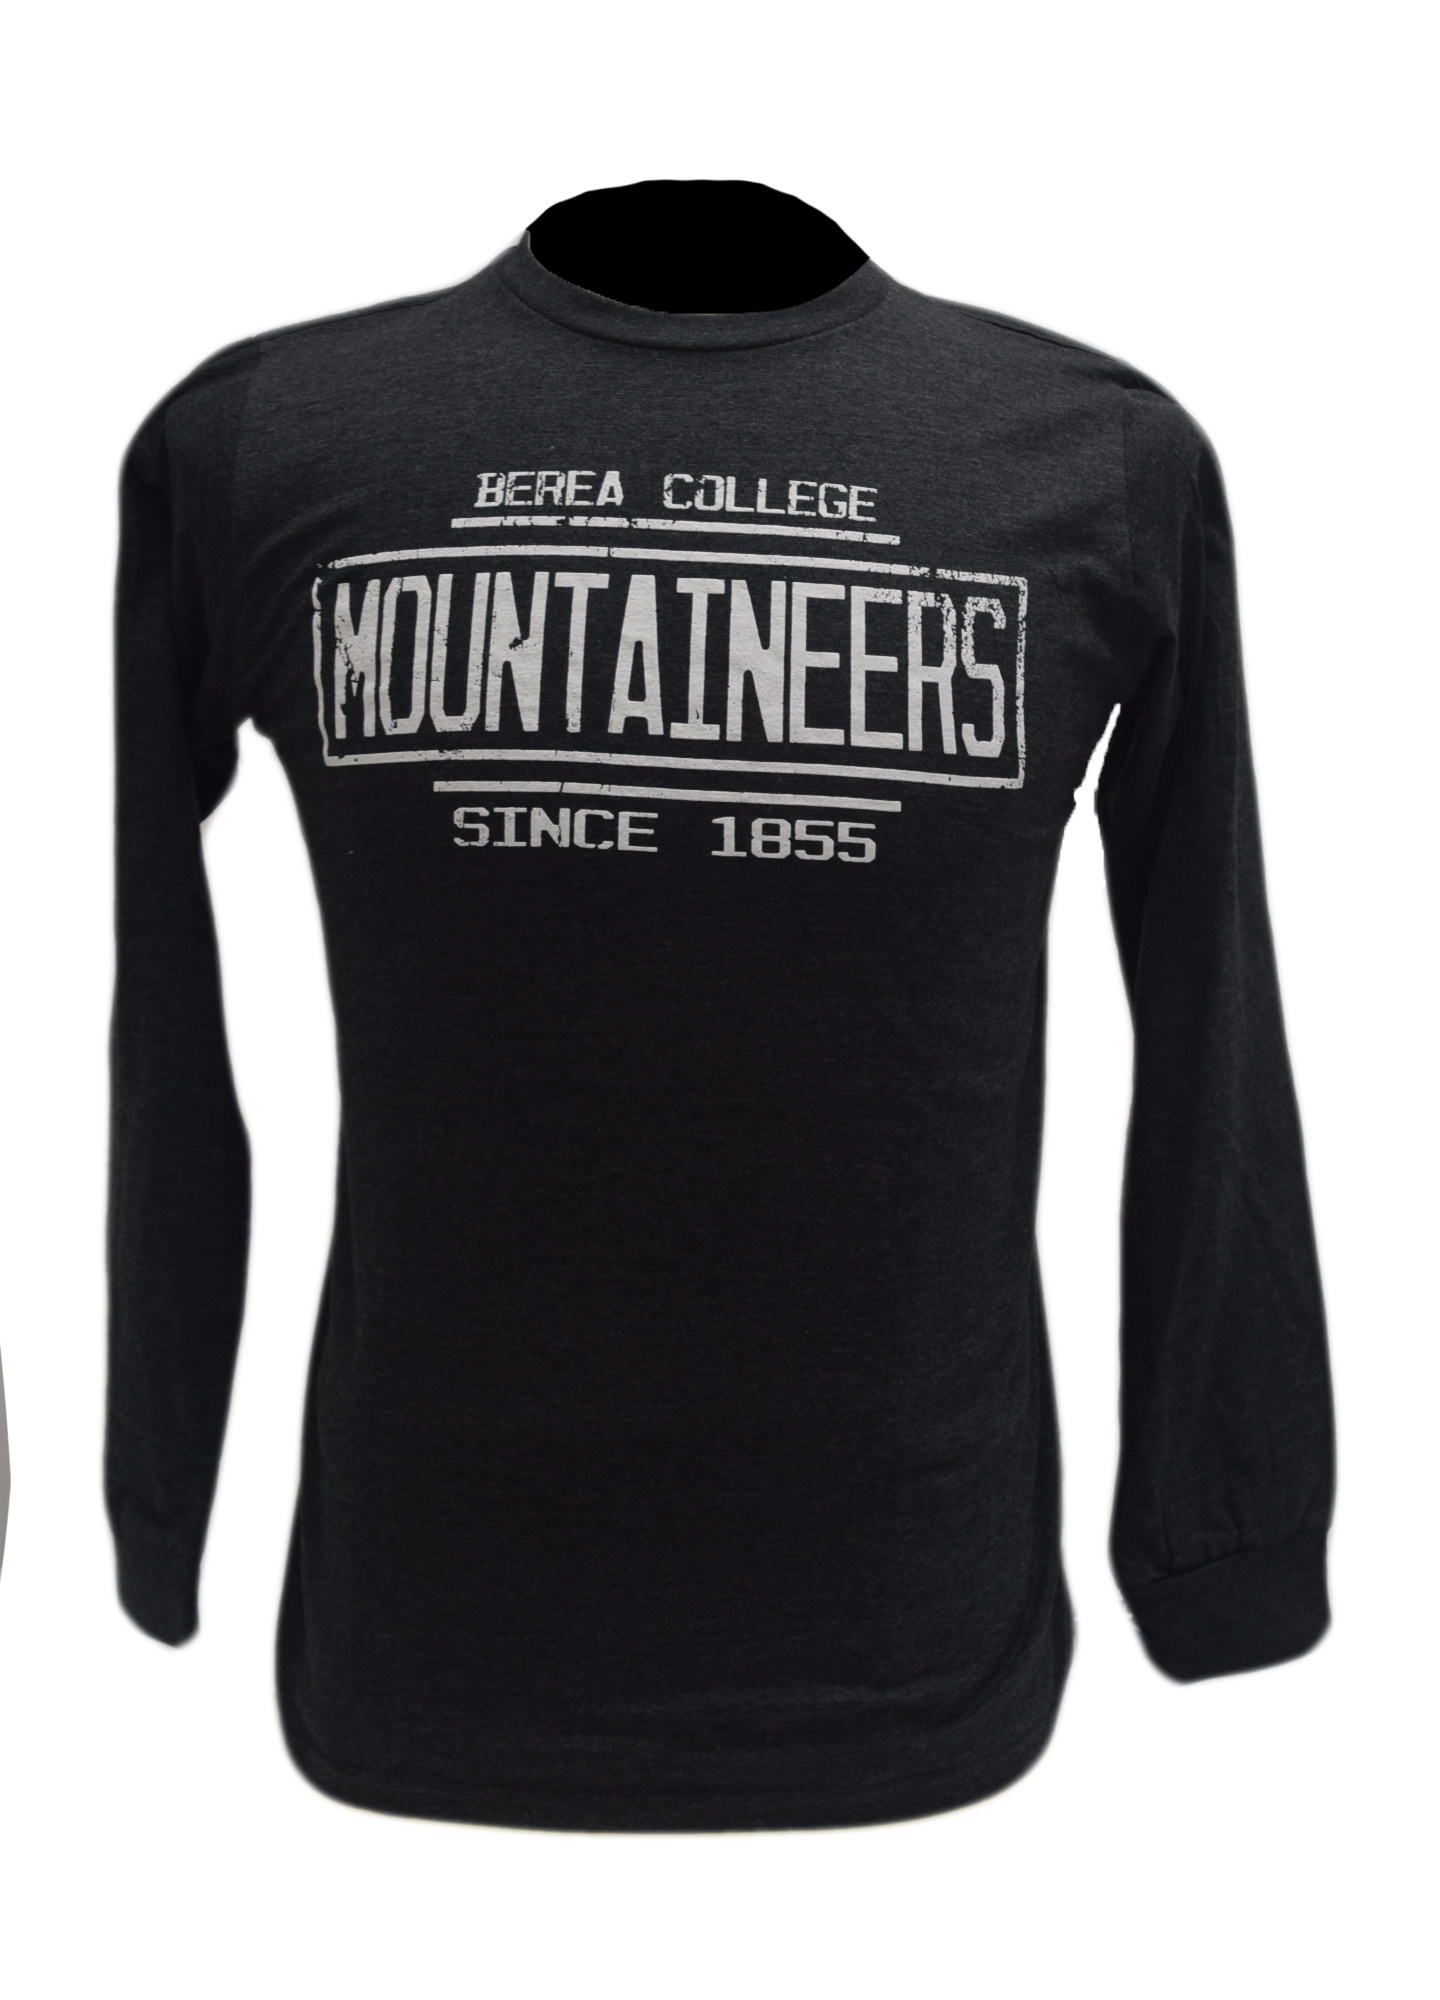 Berea College Mountaineers Since 1855 Long sleeve-1